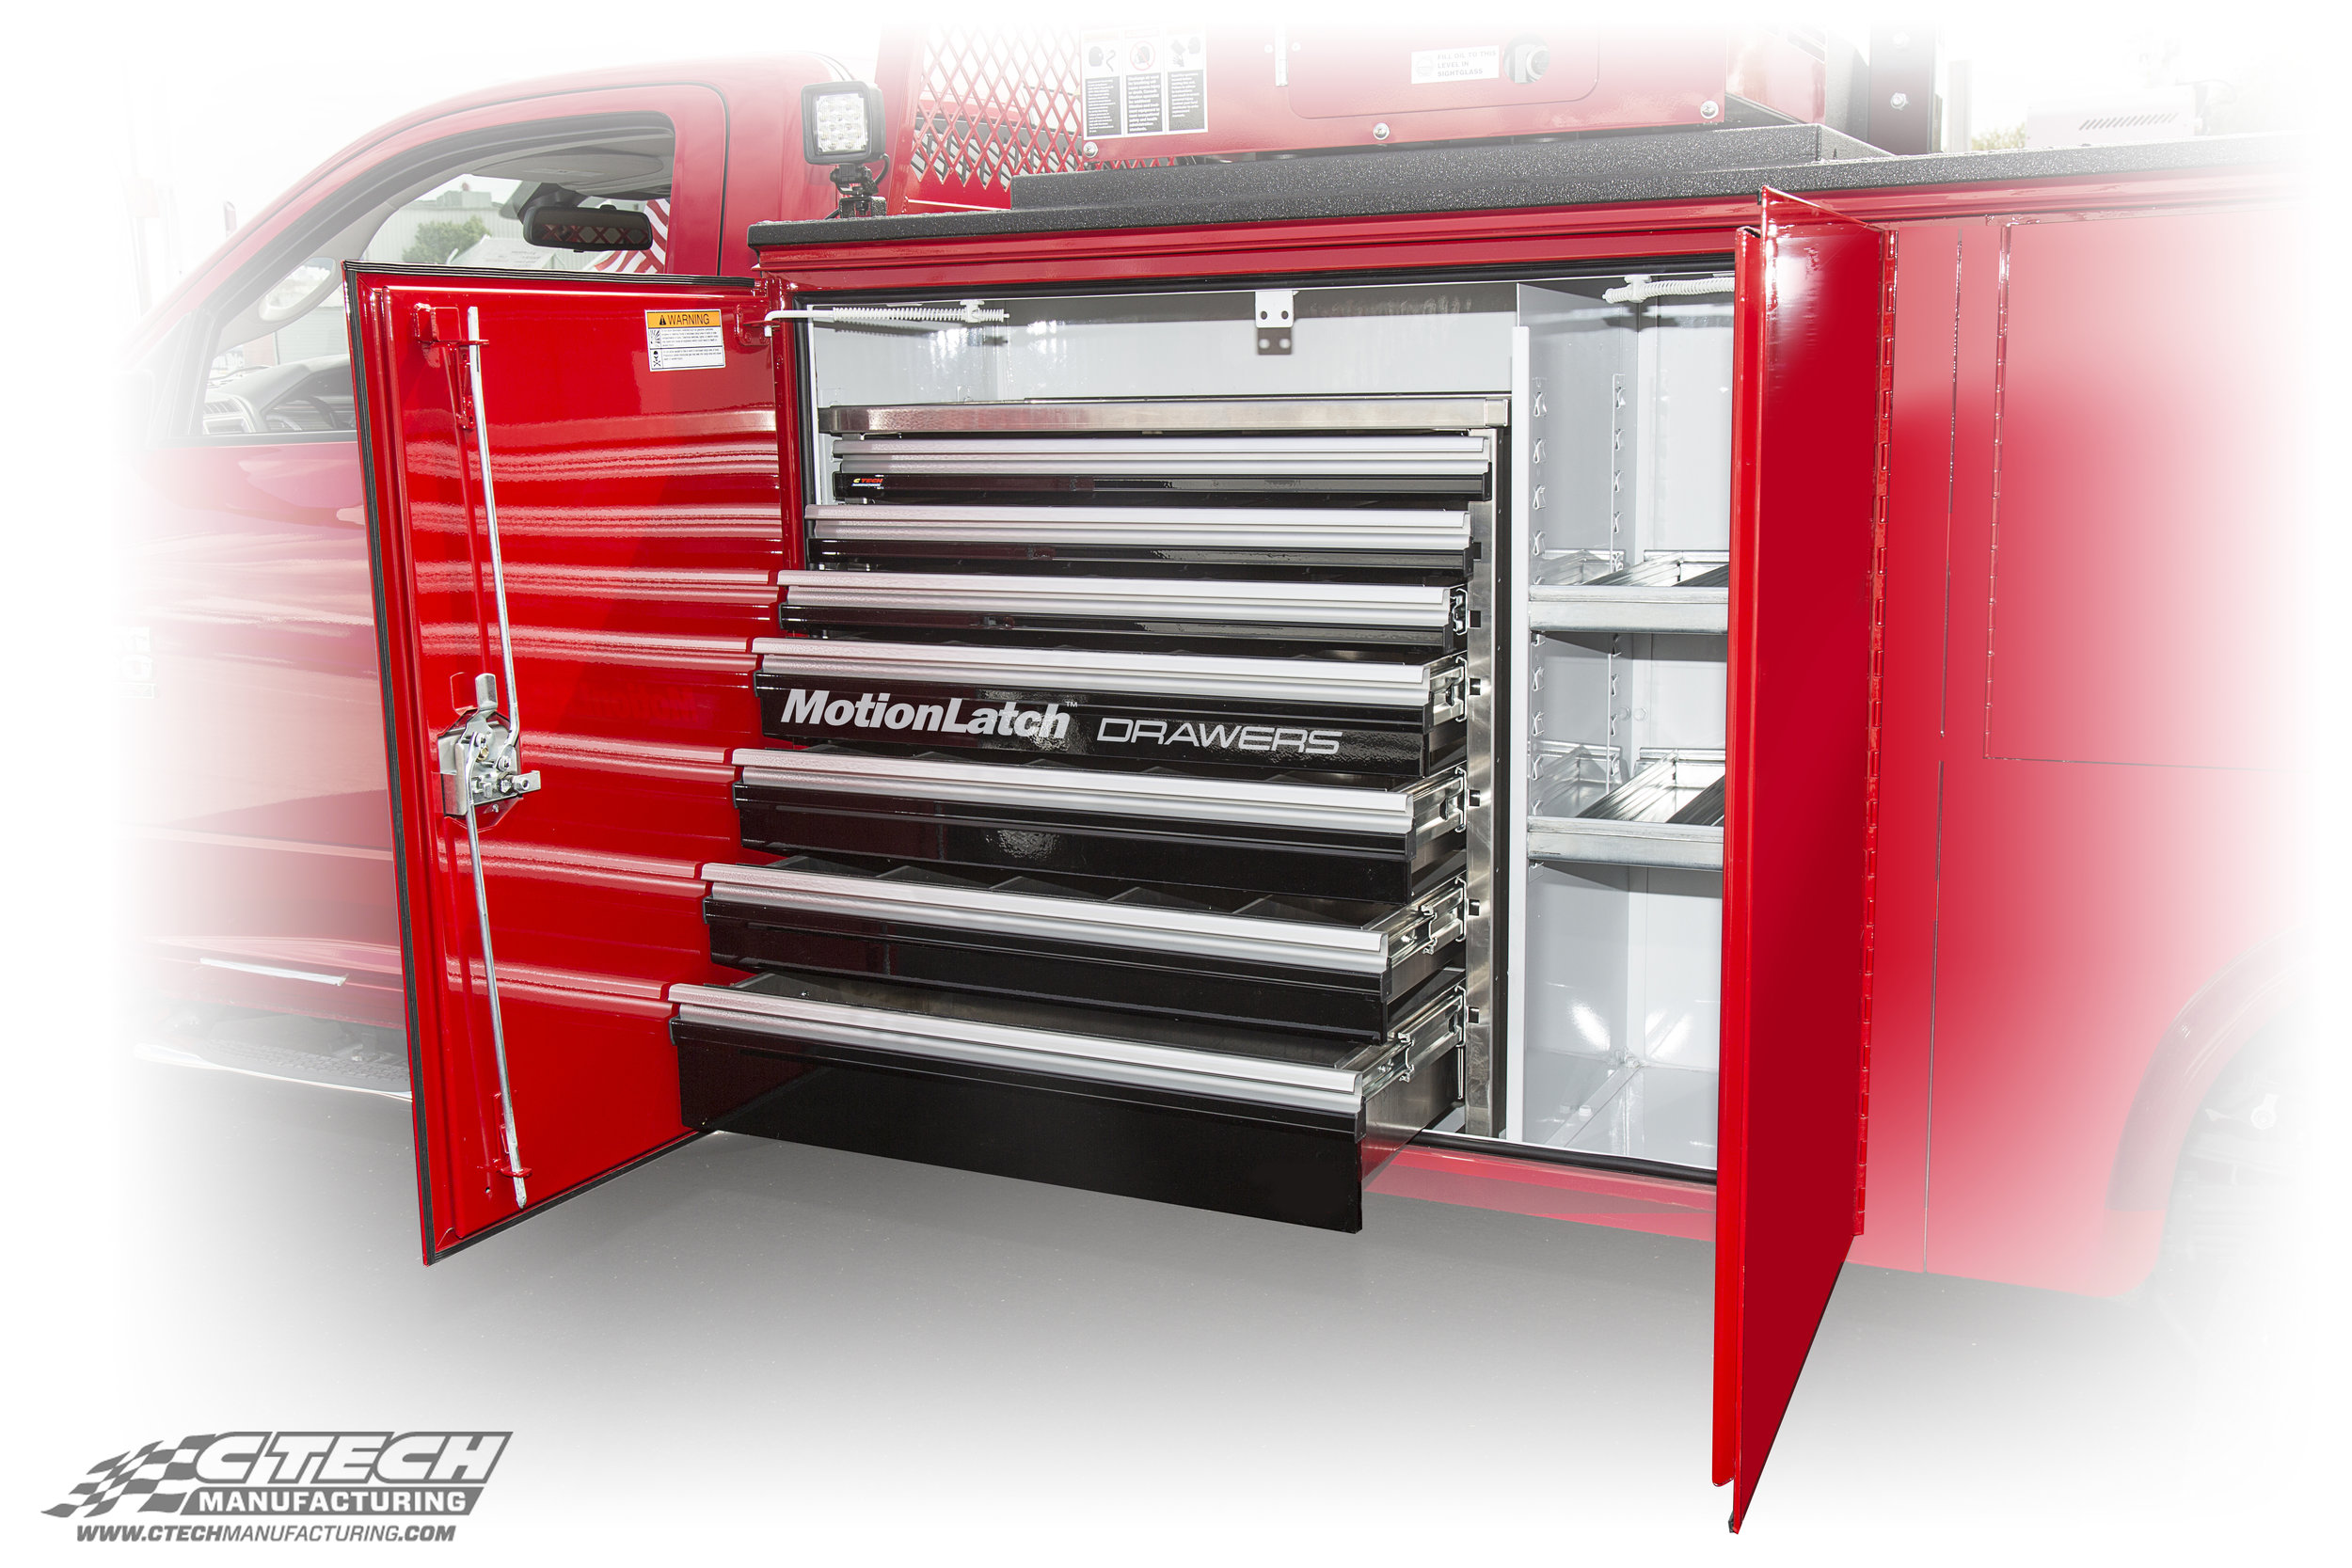 Standard Duty aluminum tool drawers from CTech boast a 250Lb load rating and MotionLatch drawer handle technology. They are easily mounted to any truck body opening.